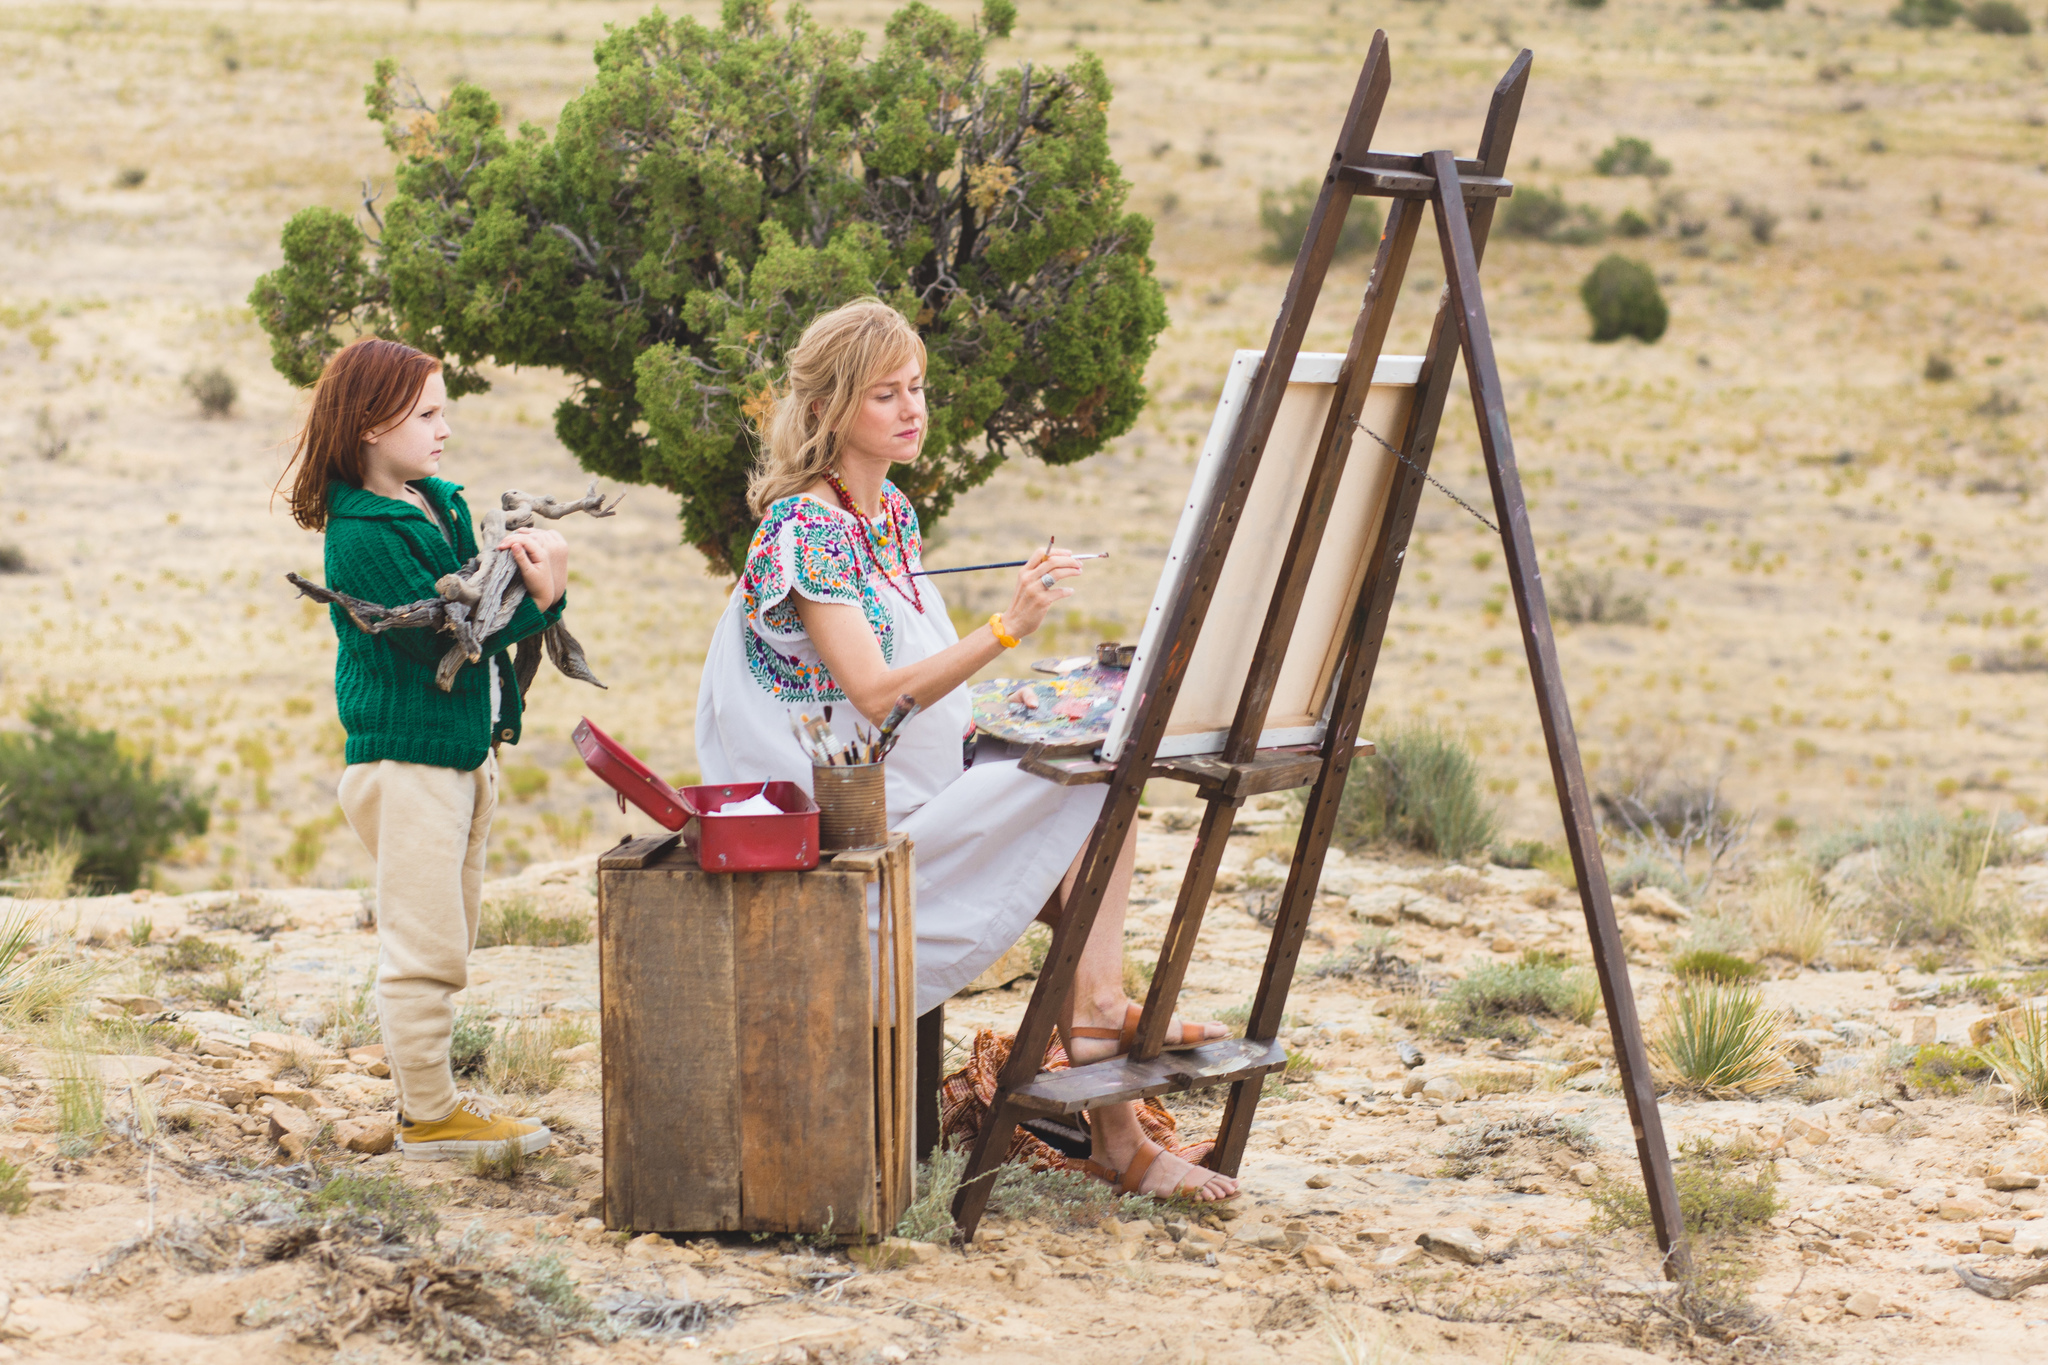 Naomi Watts and Chandler Head in The Glass Castle (2017)